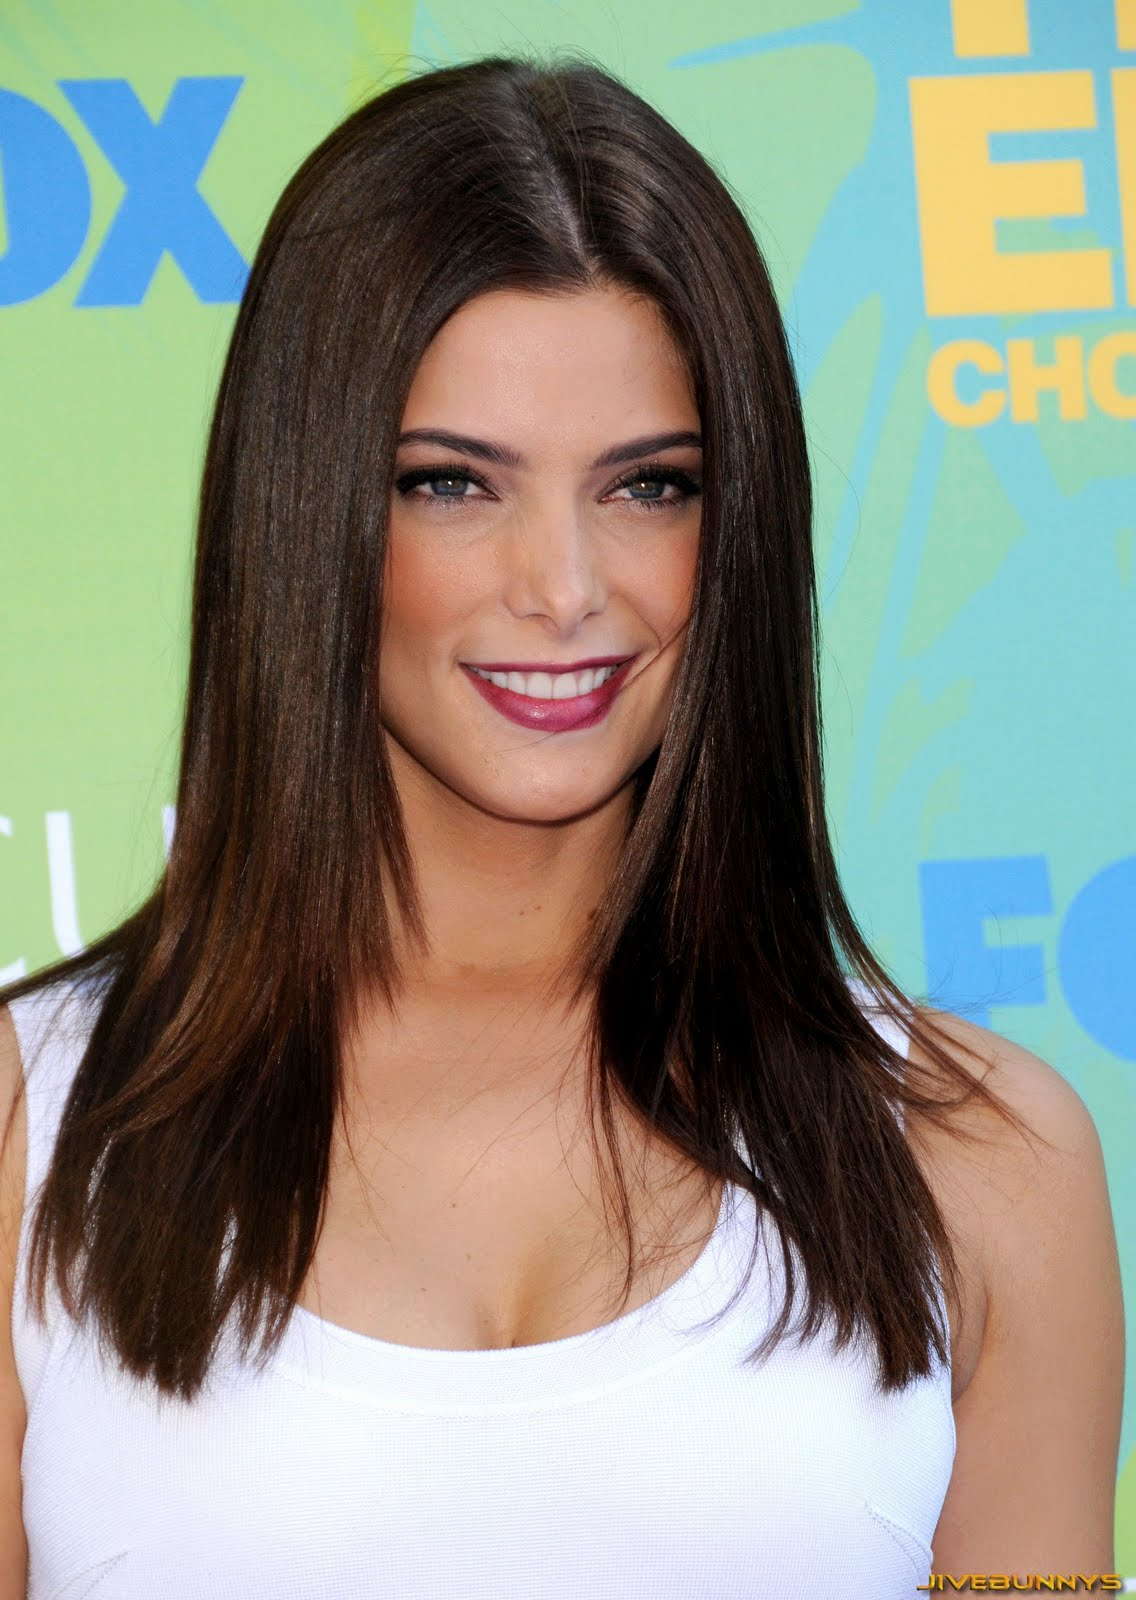 Jivebunnys Female Celebrity Picture Gallery: Ashley Greene Sexy ... Beyonce Knowles